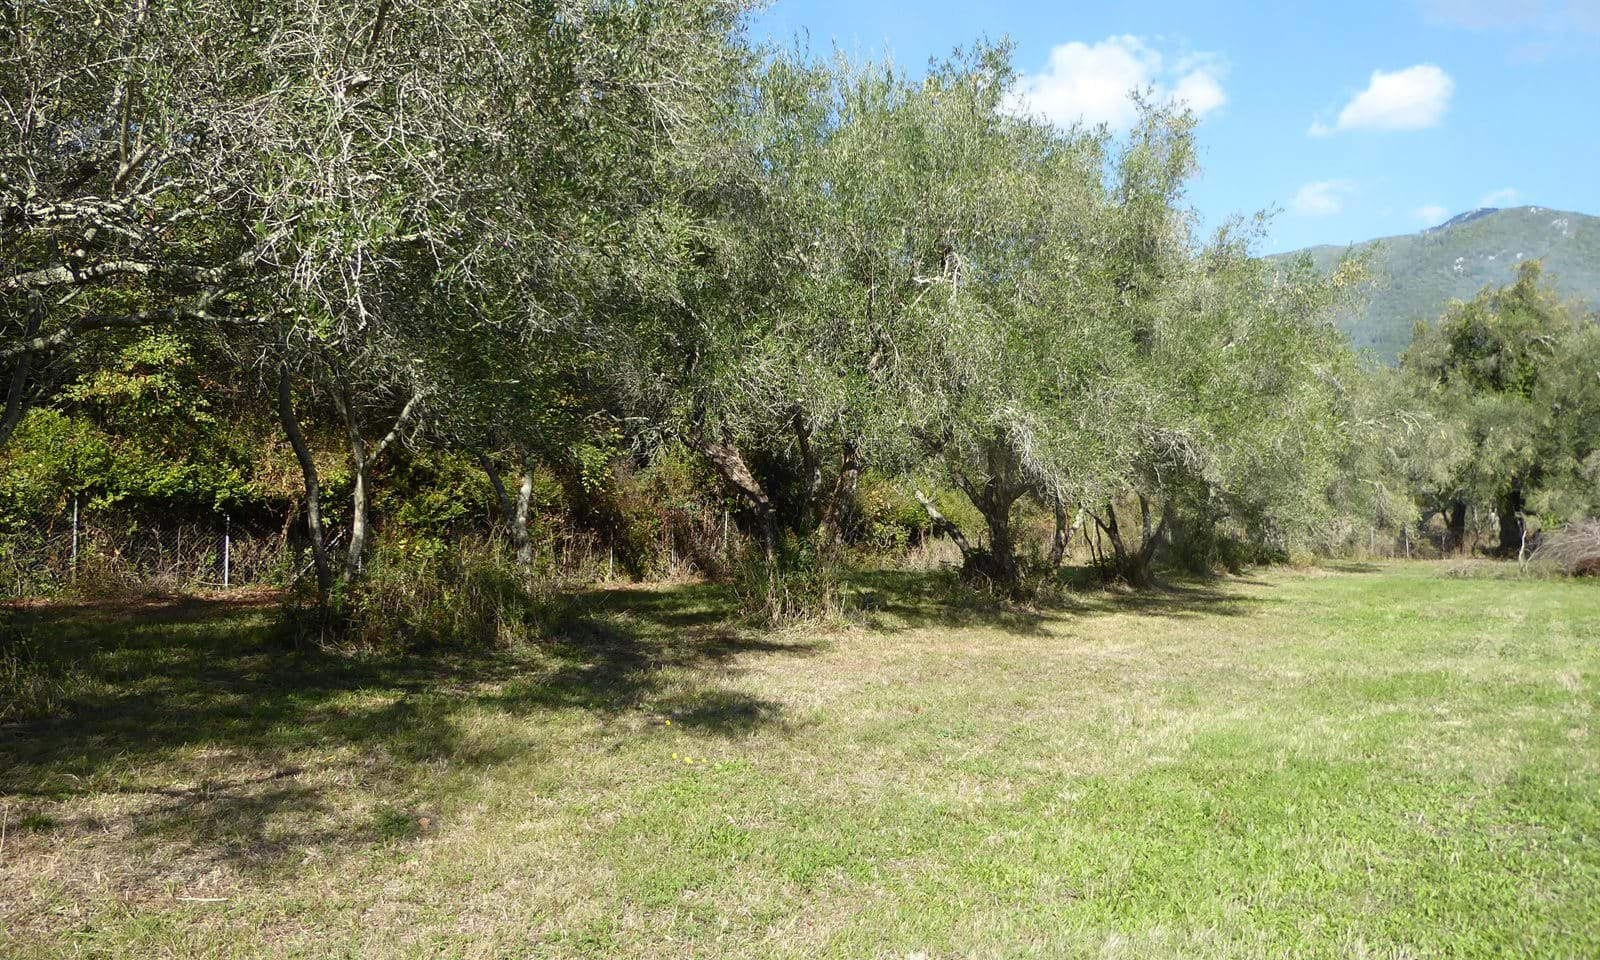 Land for sale in Corfu near the sea